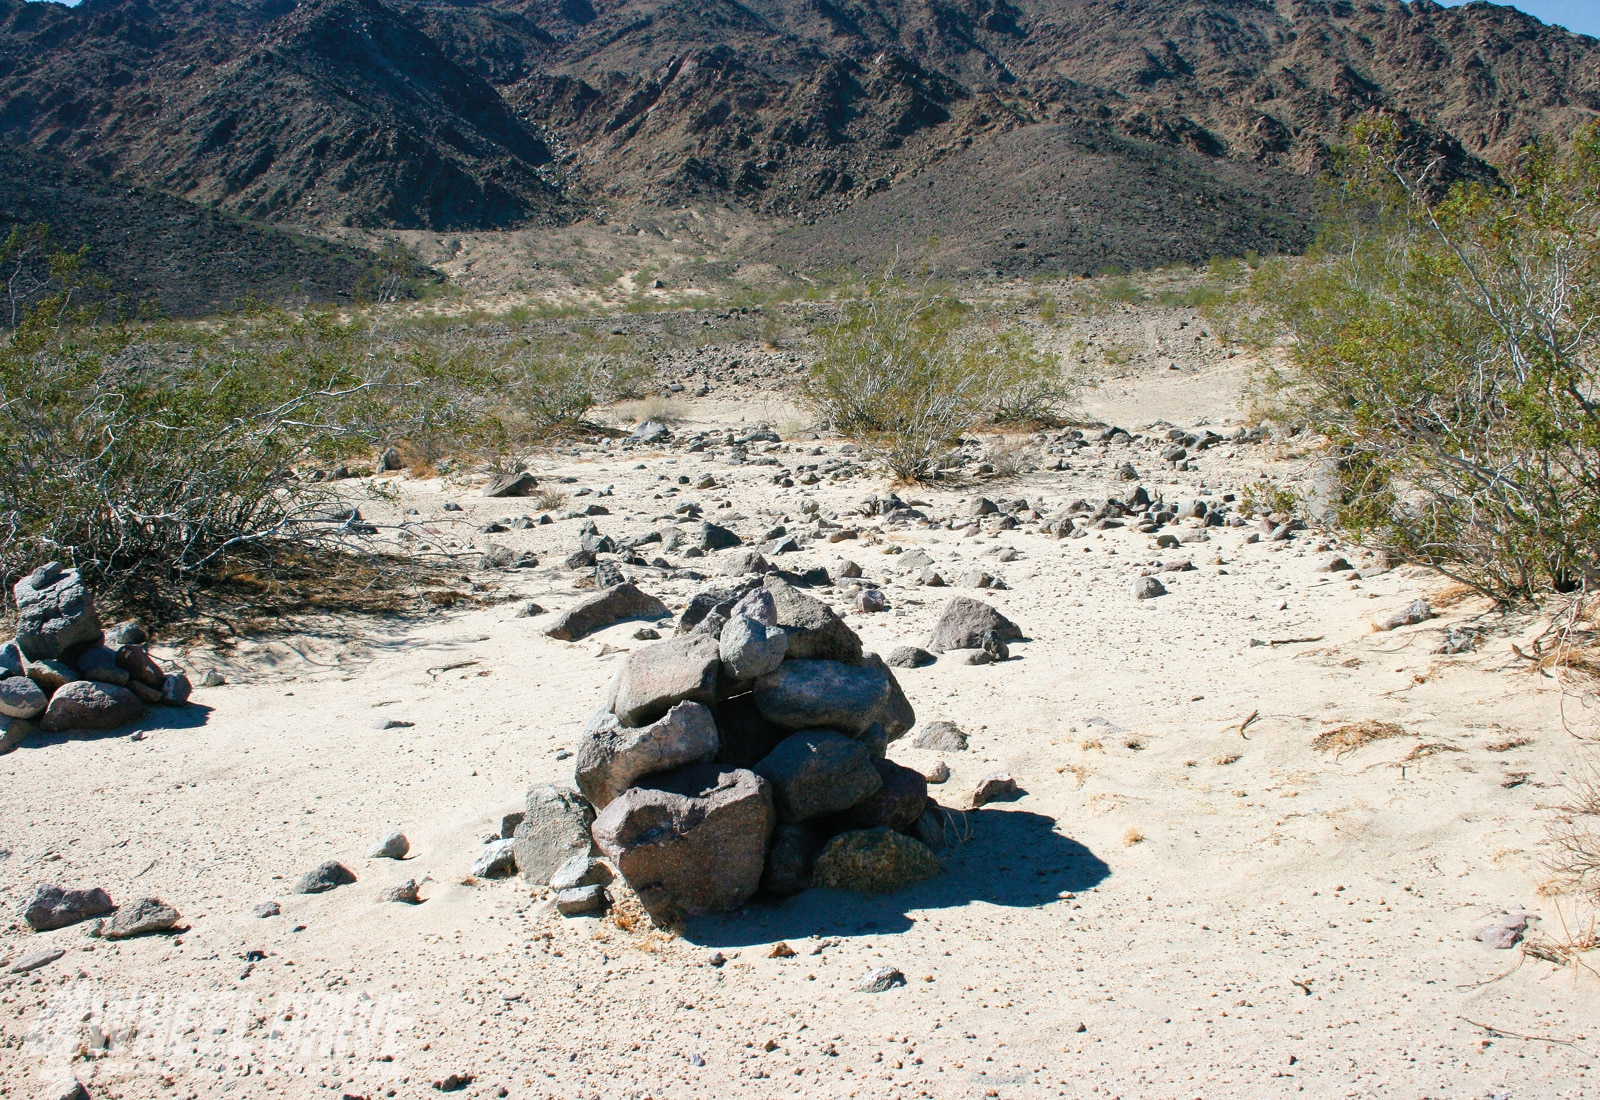 1003 4wd 05+mojave road+rock cairns